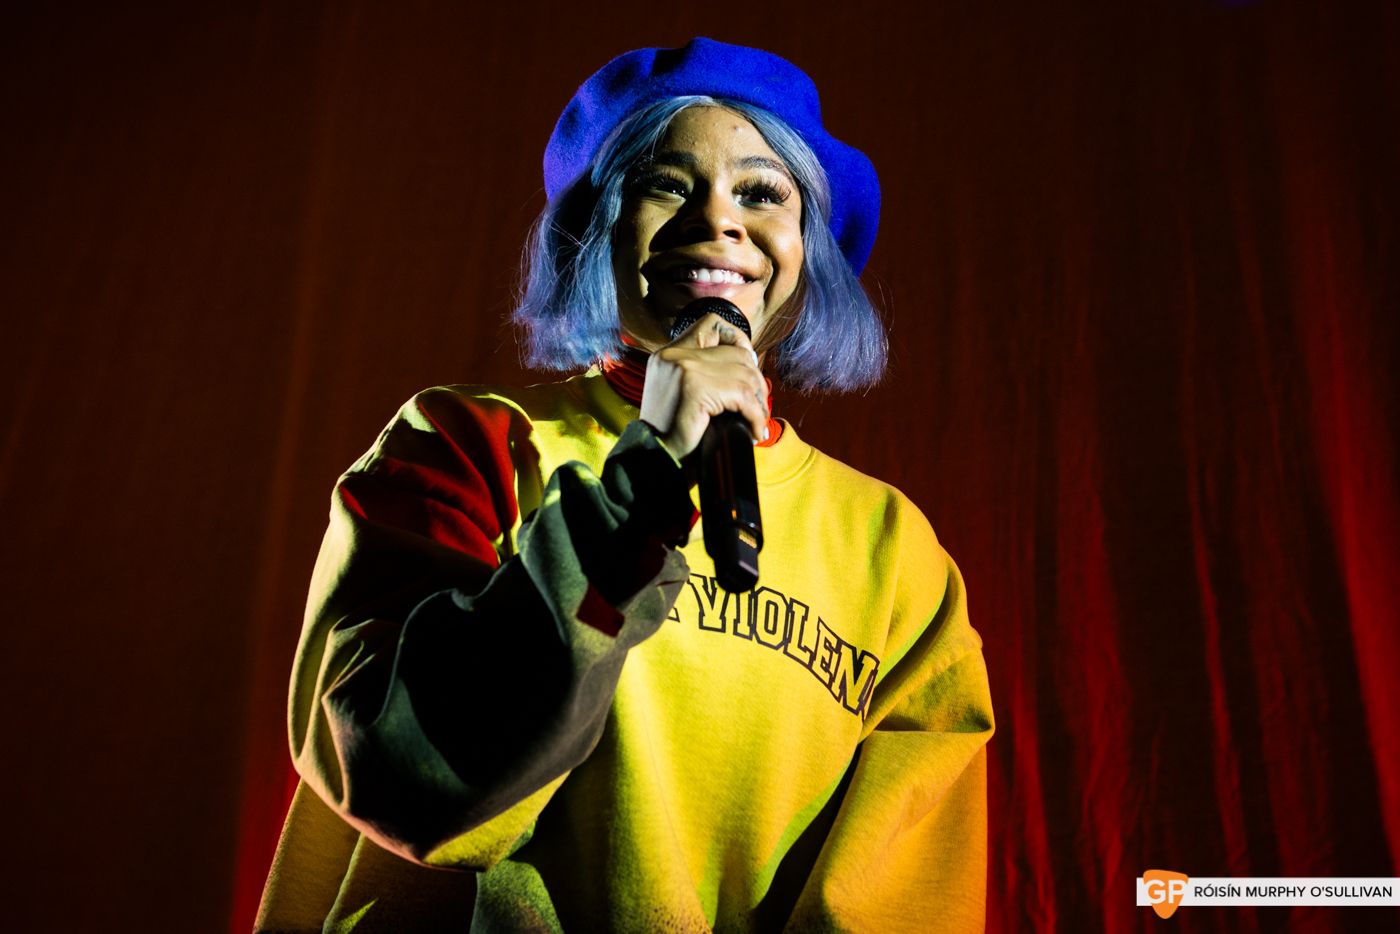 Tayla Parx in The Olympia by Roisin Murphy O'Sullivan (2 of 18)